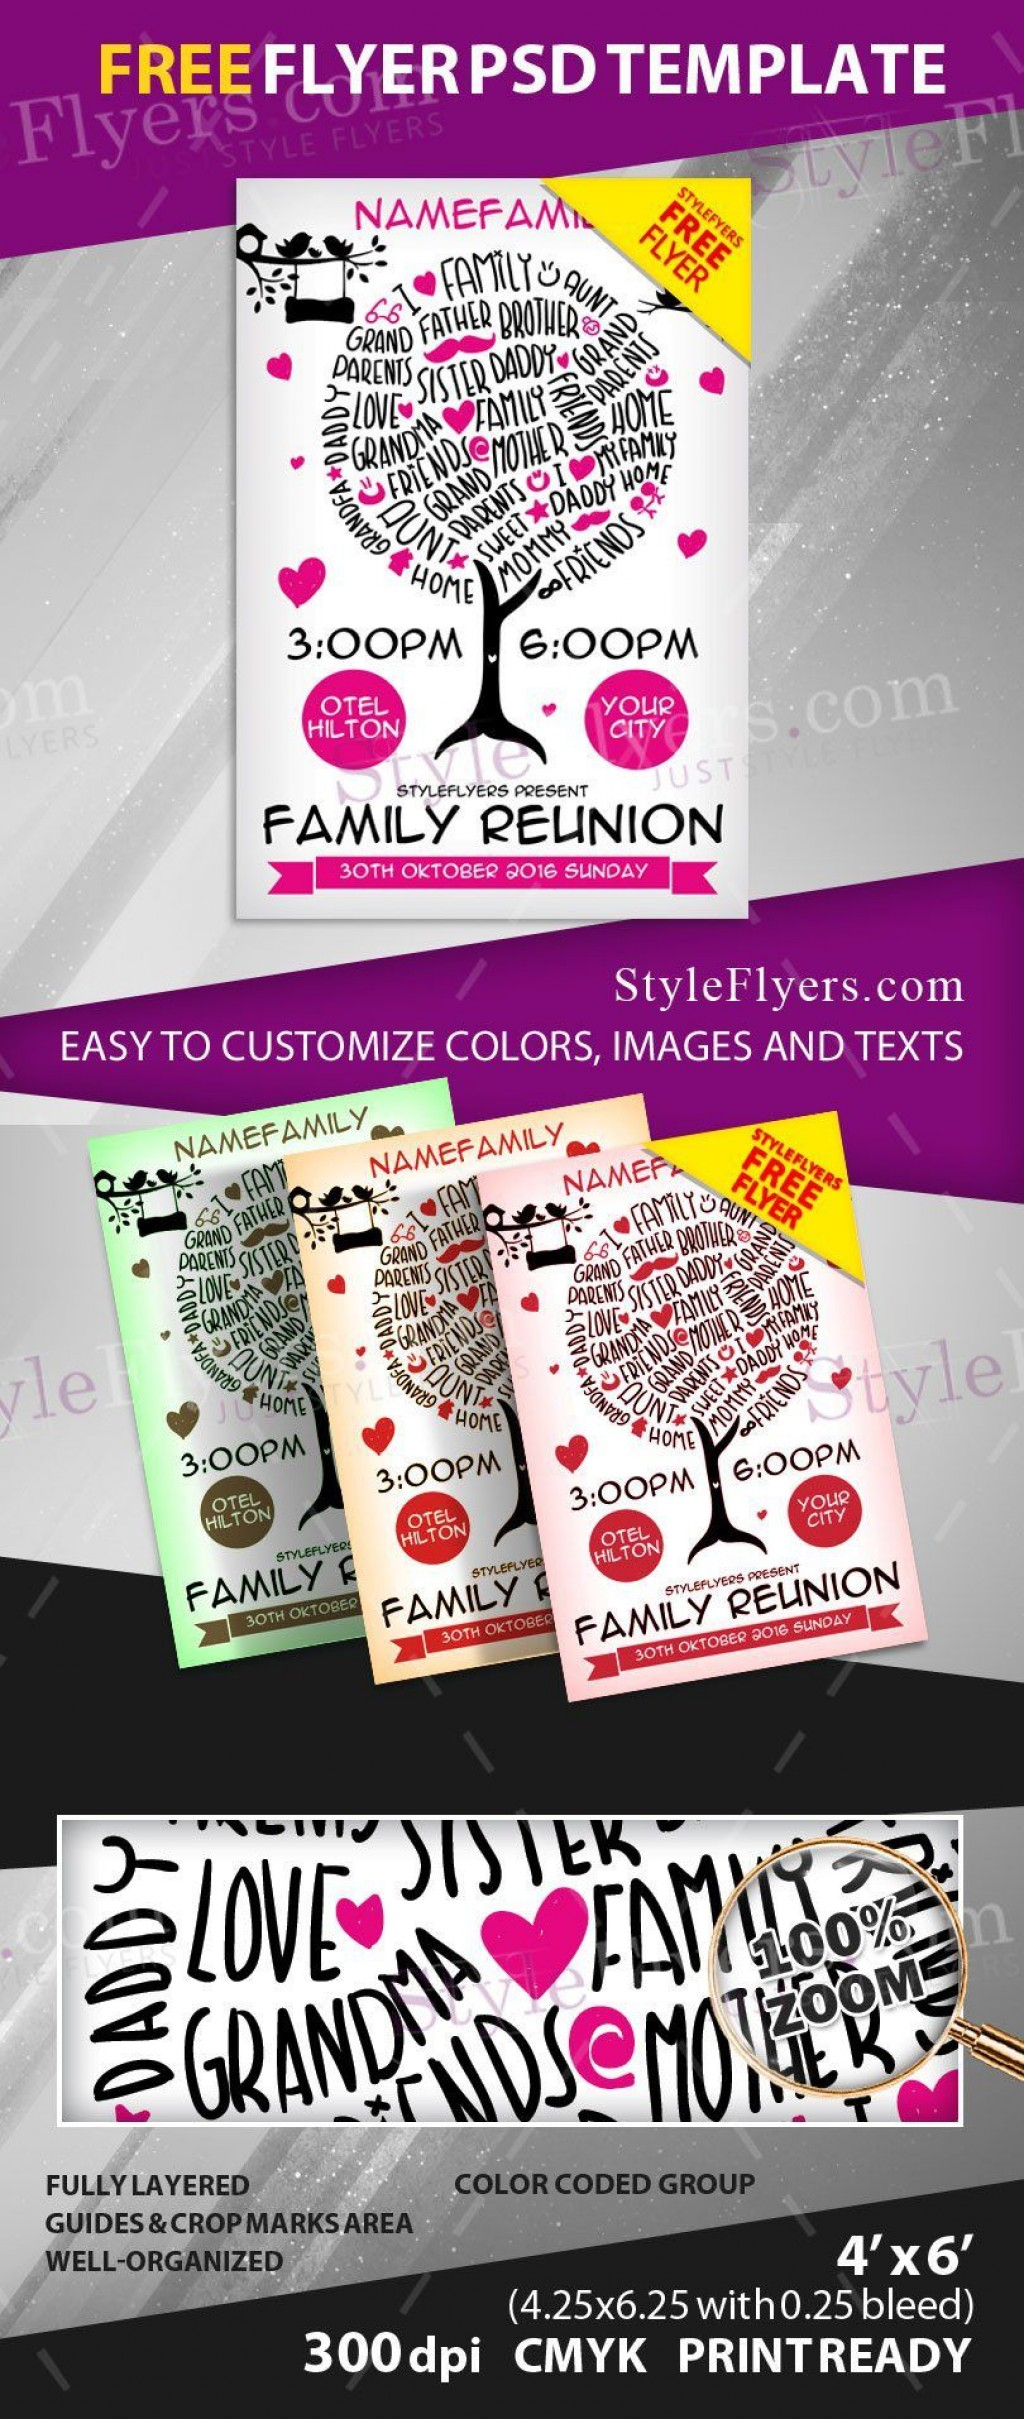 009 Unbelievable Family Reunion Flyer Template Free Concept  Downloadable Printable InvitationLarge